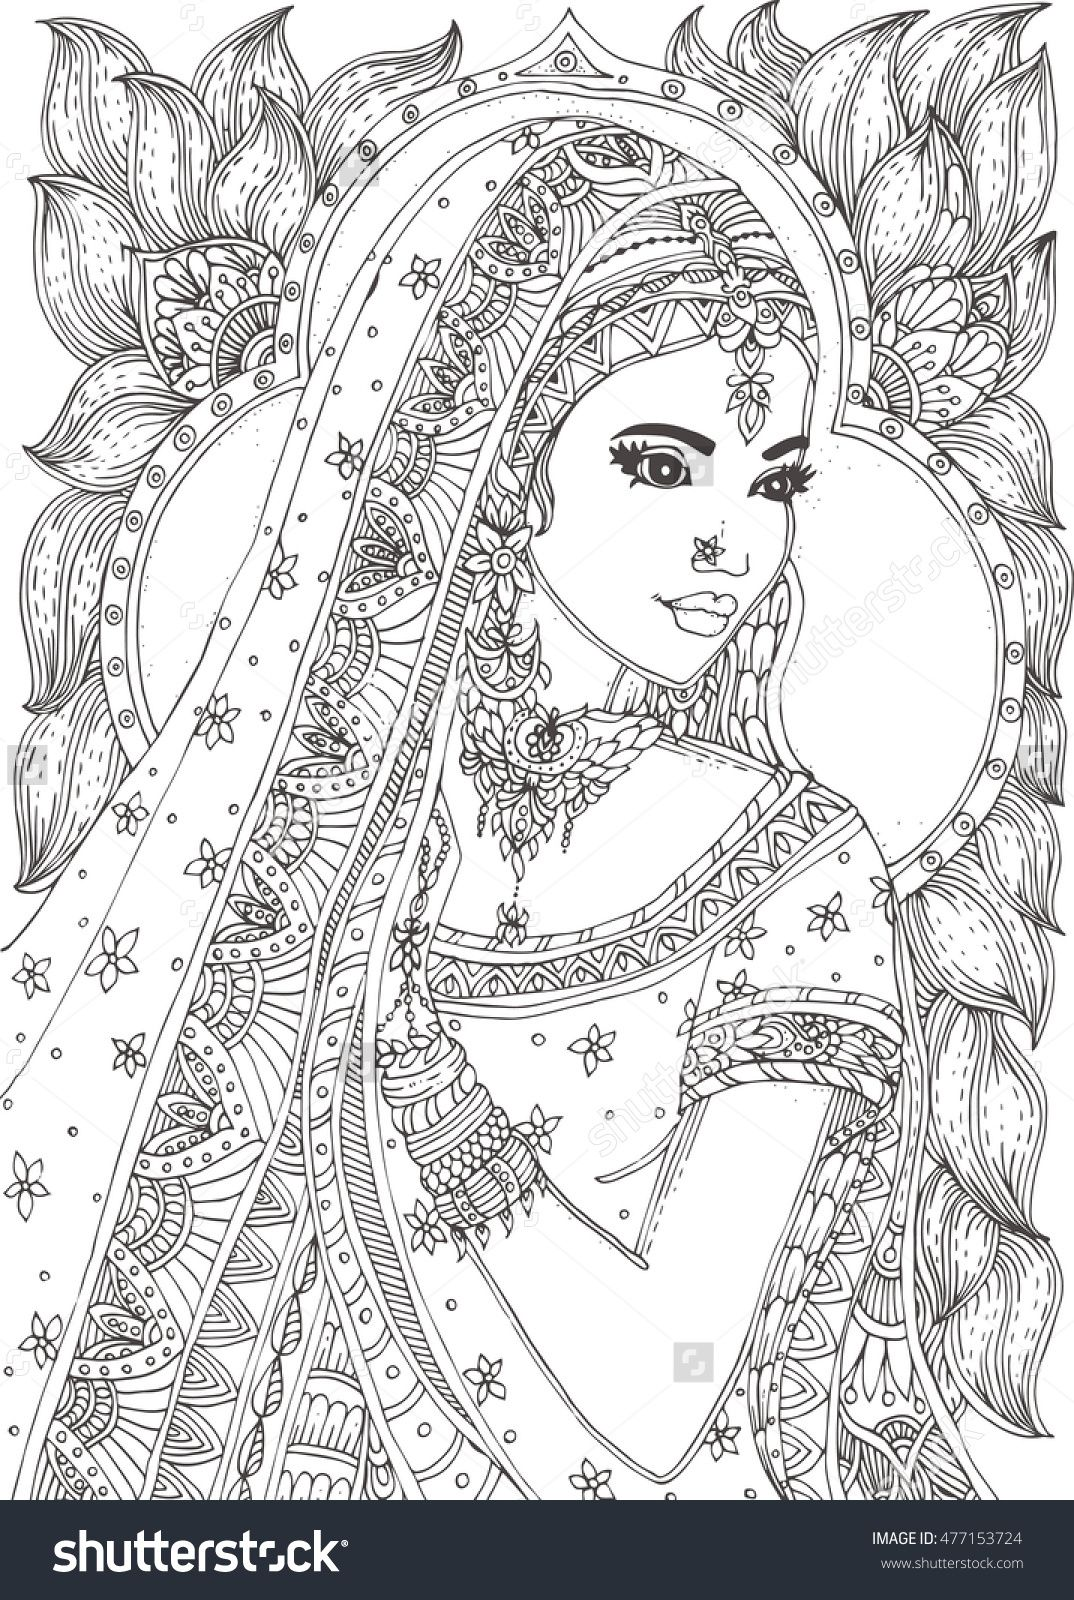 Printable Mandala Coloring Pages For Grown Up beautiful indian woman zendala coloring page